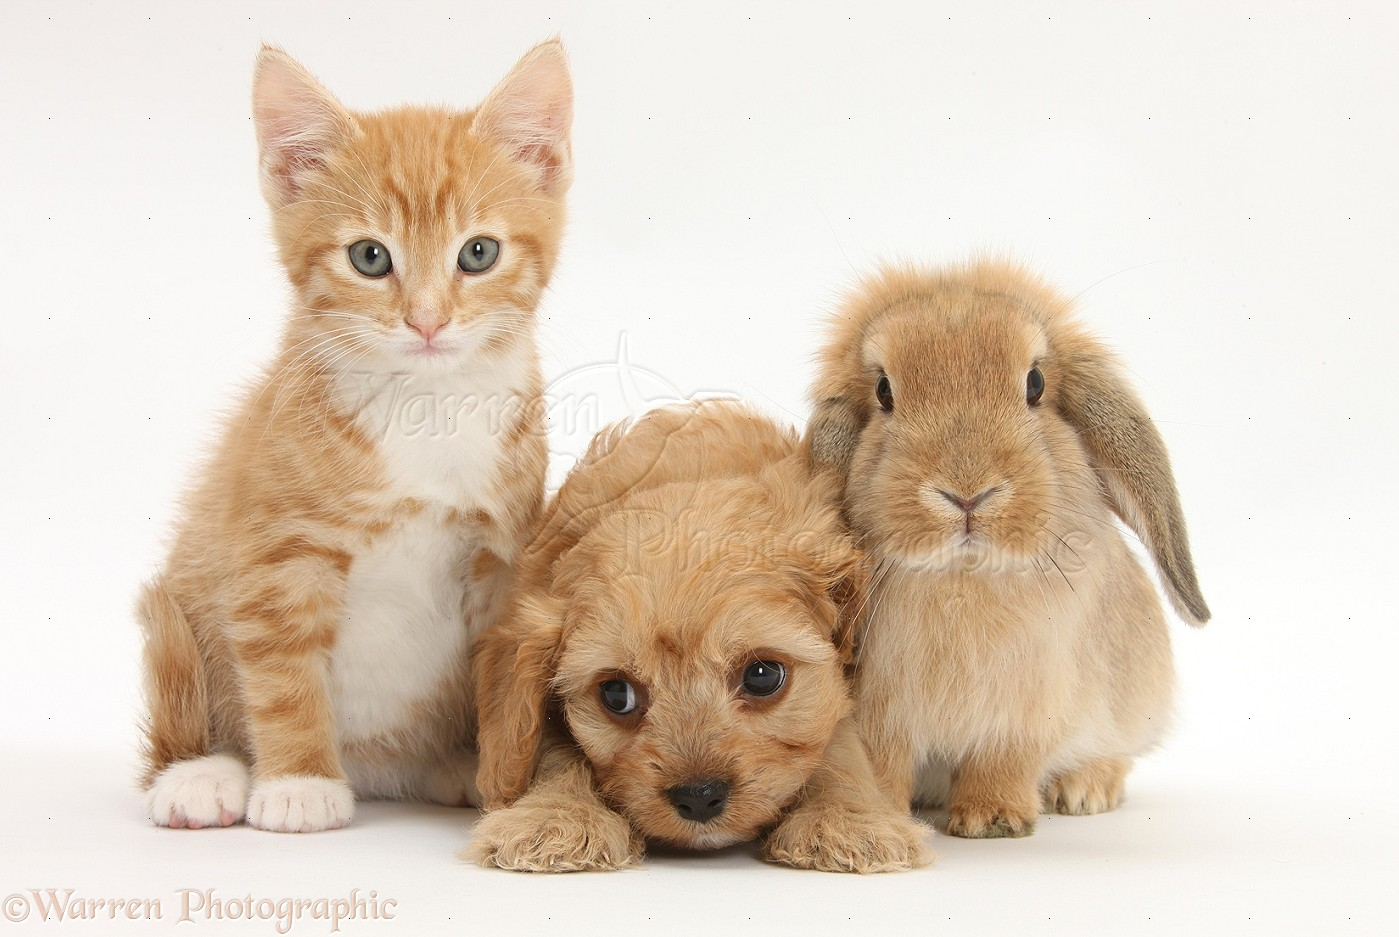 pets ginger kitten with cavapoo pup and lop rabbit photo